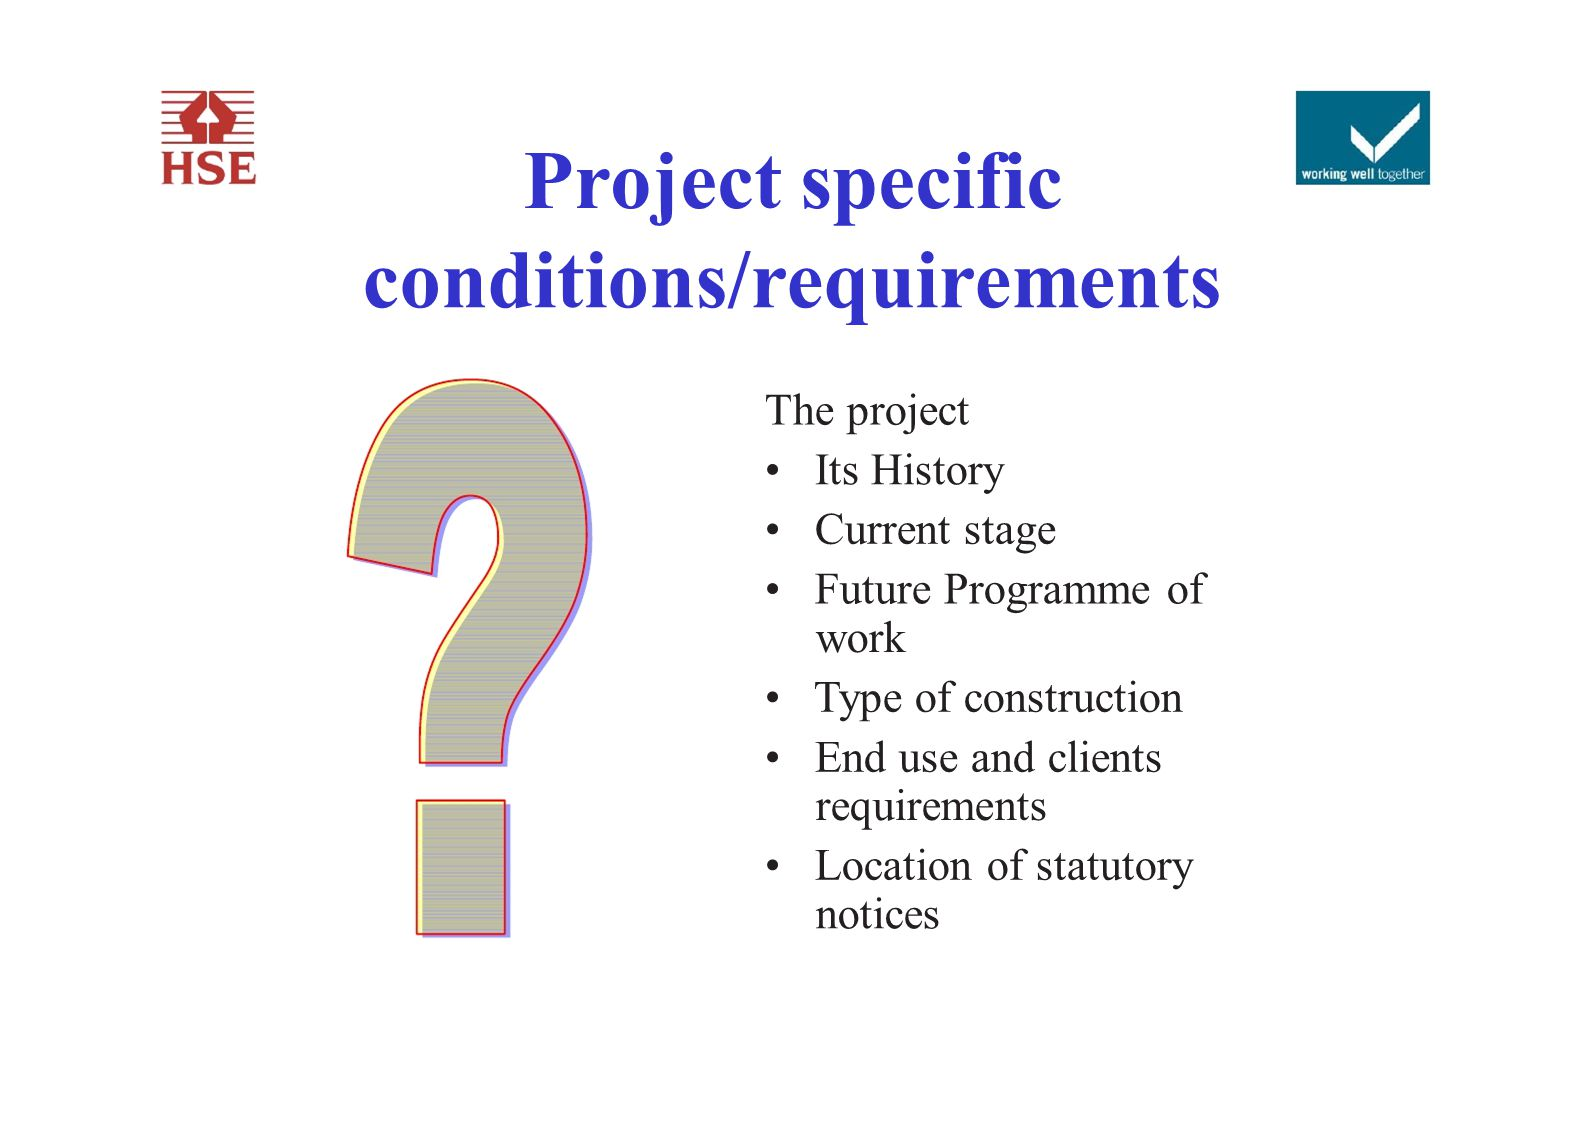 Project specific conditions/requirements The project Its History Current stage Future Programme of work Type of construction End use and clients requi